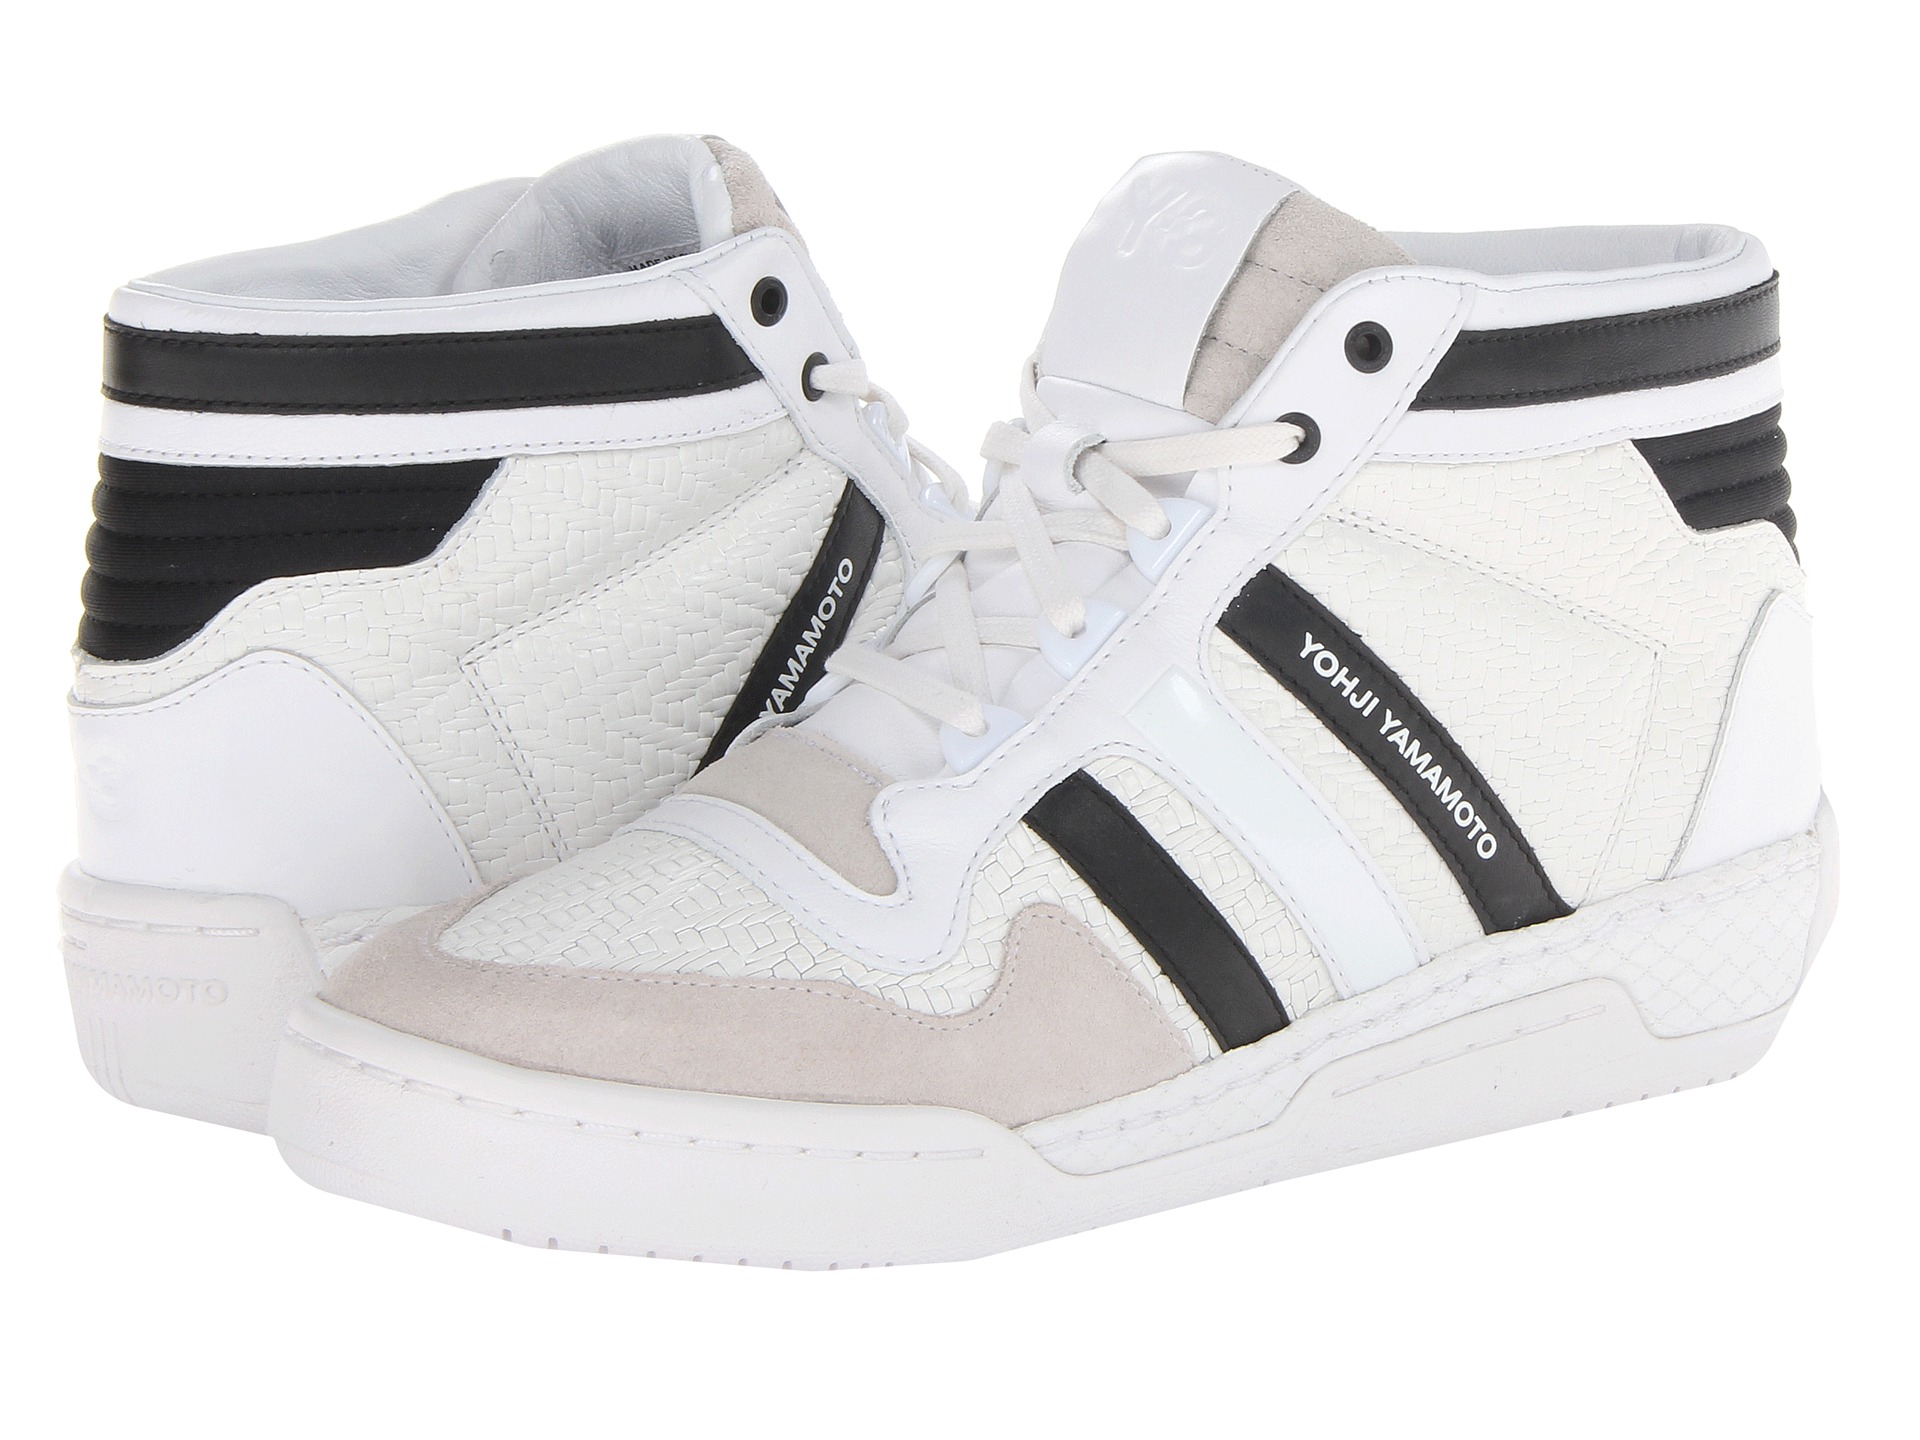 Lyst - Y-3 Y3 Courtside Ii in White for Men 66b6e4ff8